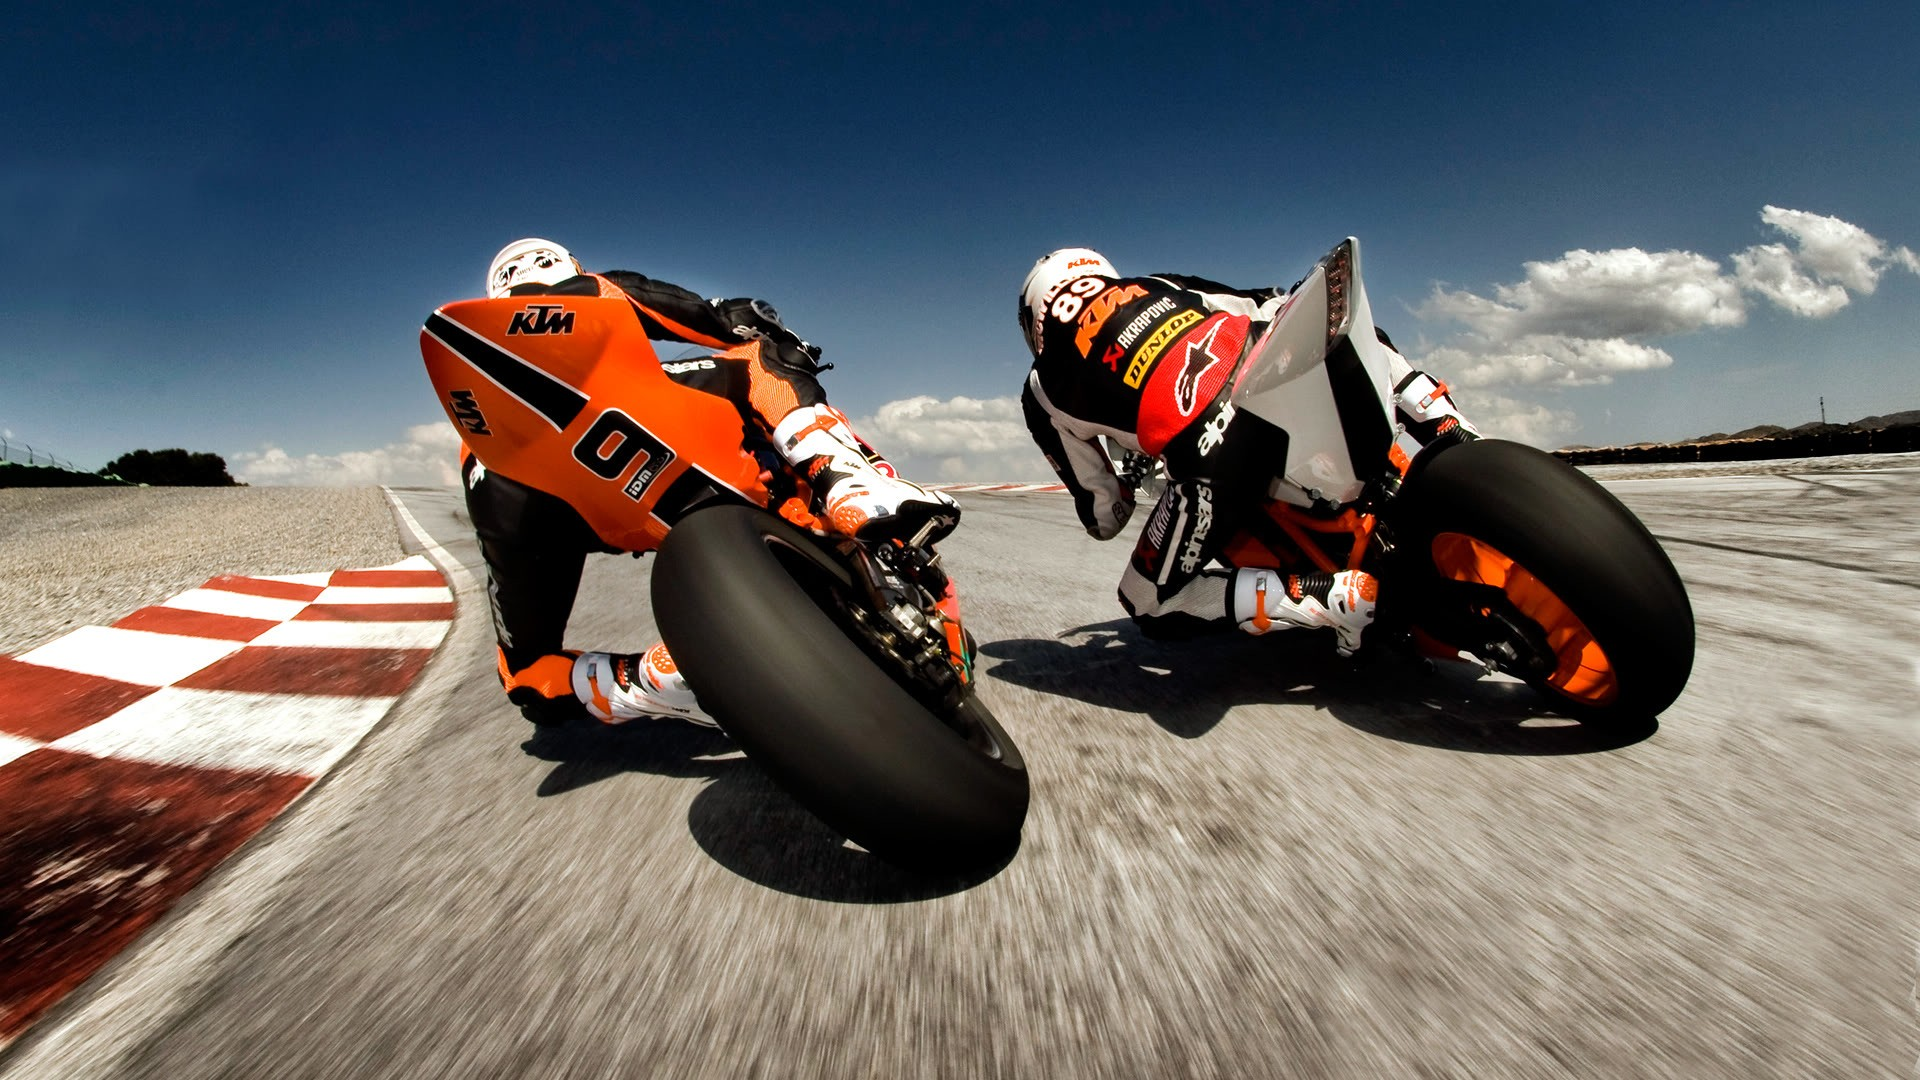 Bikes Racing   Bikes and Motorcycle Wallpapers Best HD Wallpapers 1920x1080